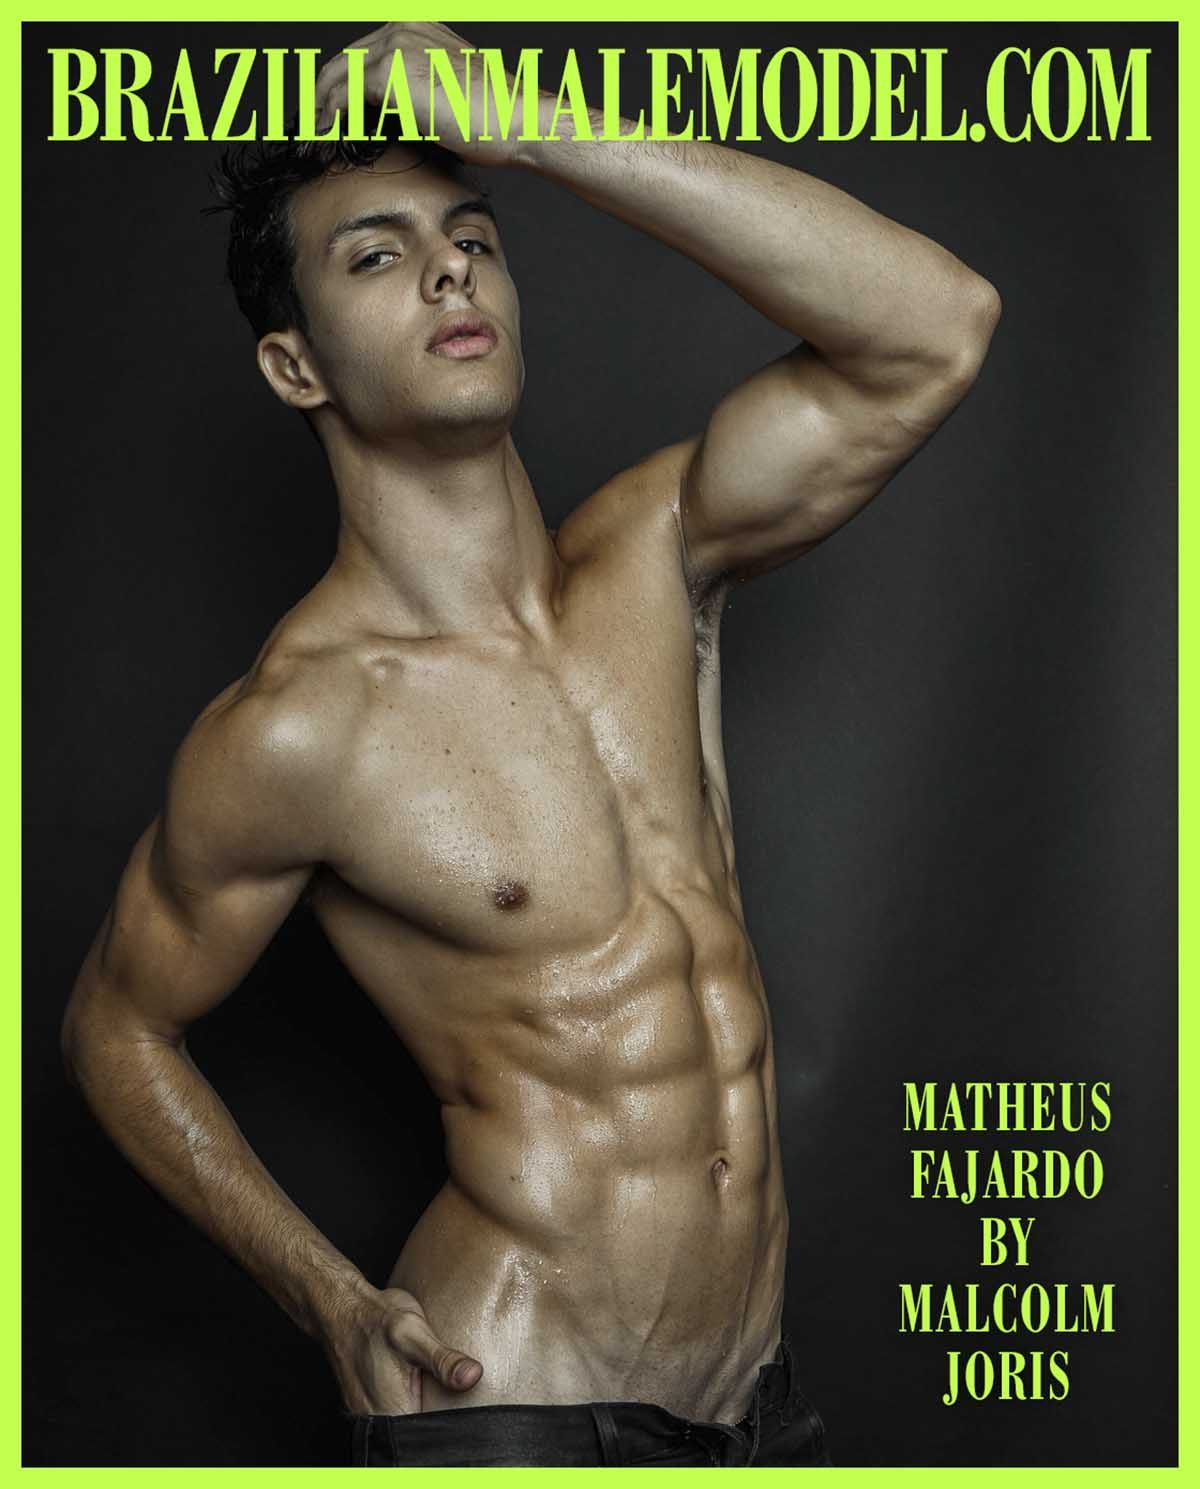 Matheus Fajardo by Malcolm Joris